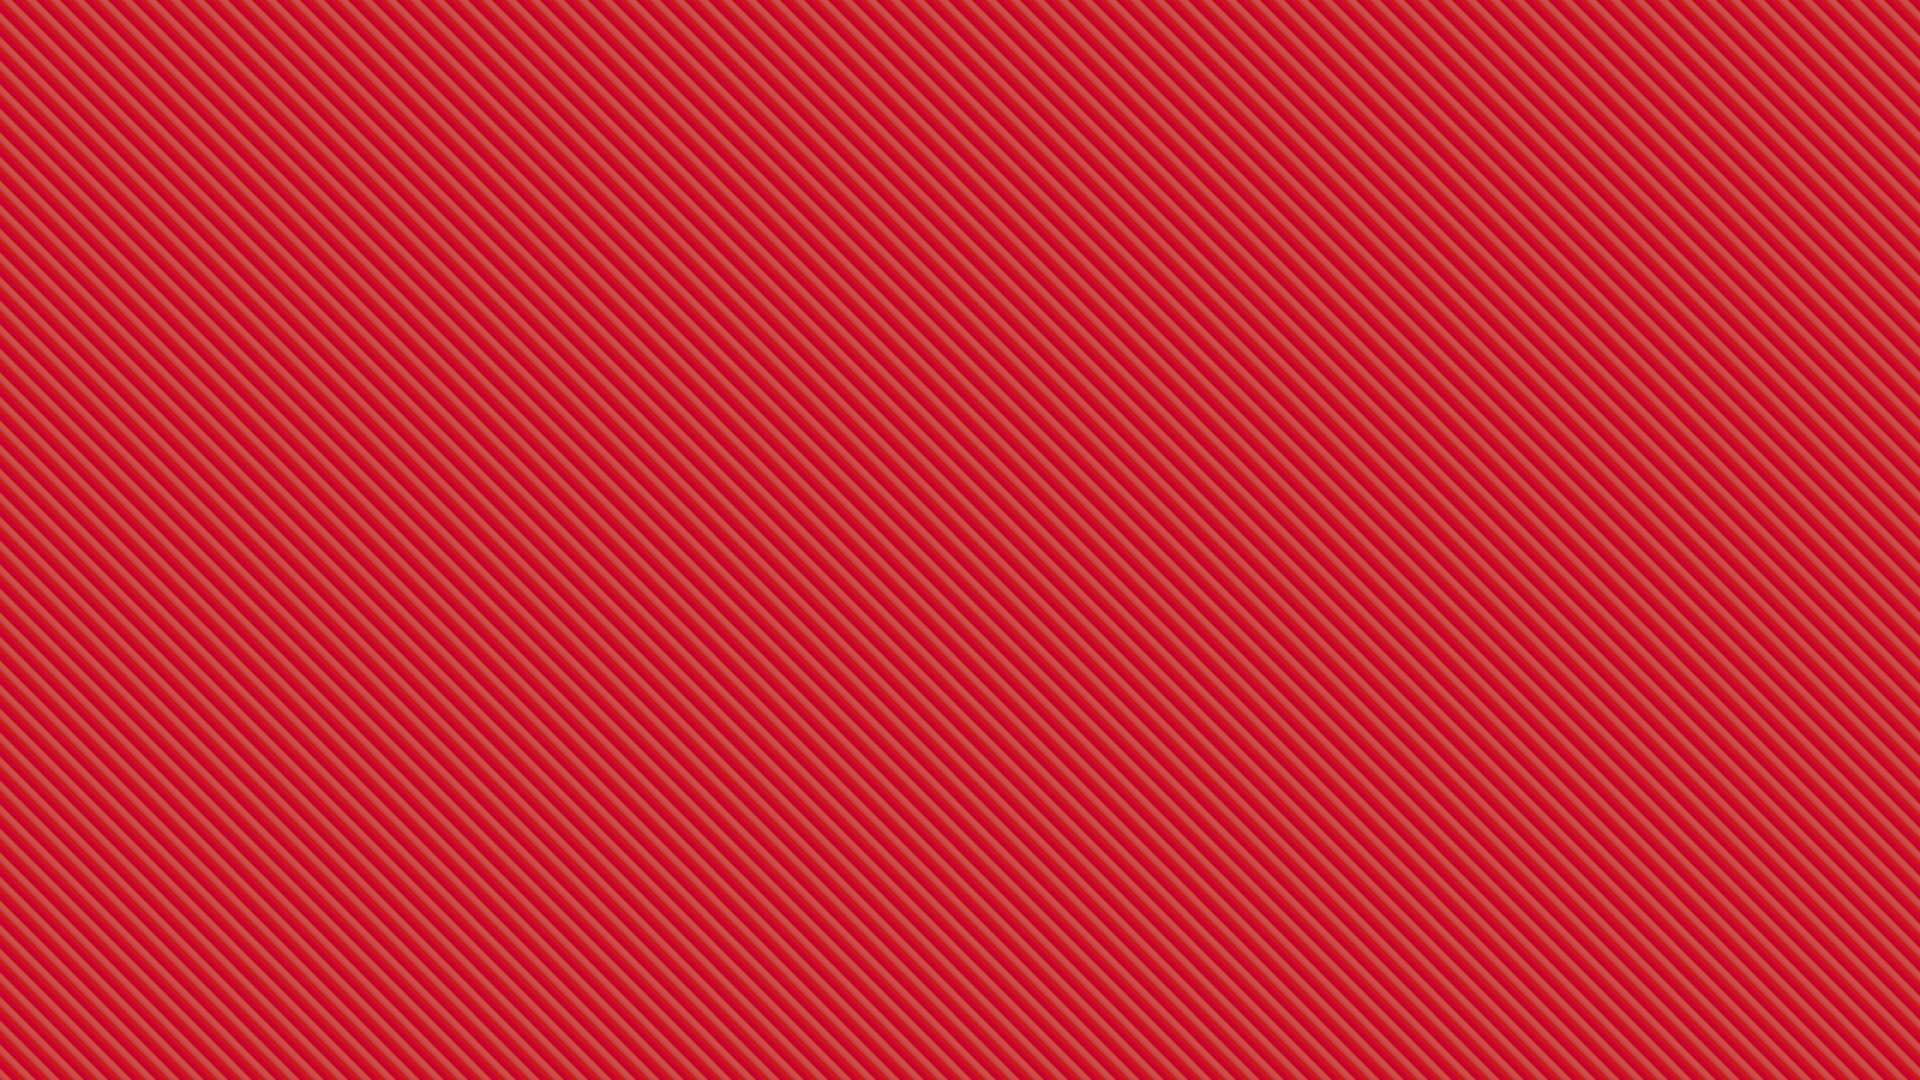 Download Wallpaper 1920x1080 red, lines, background, texture Full ...